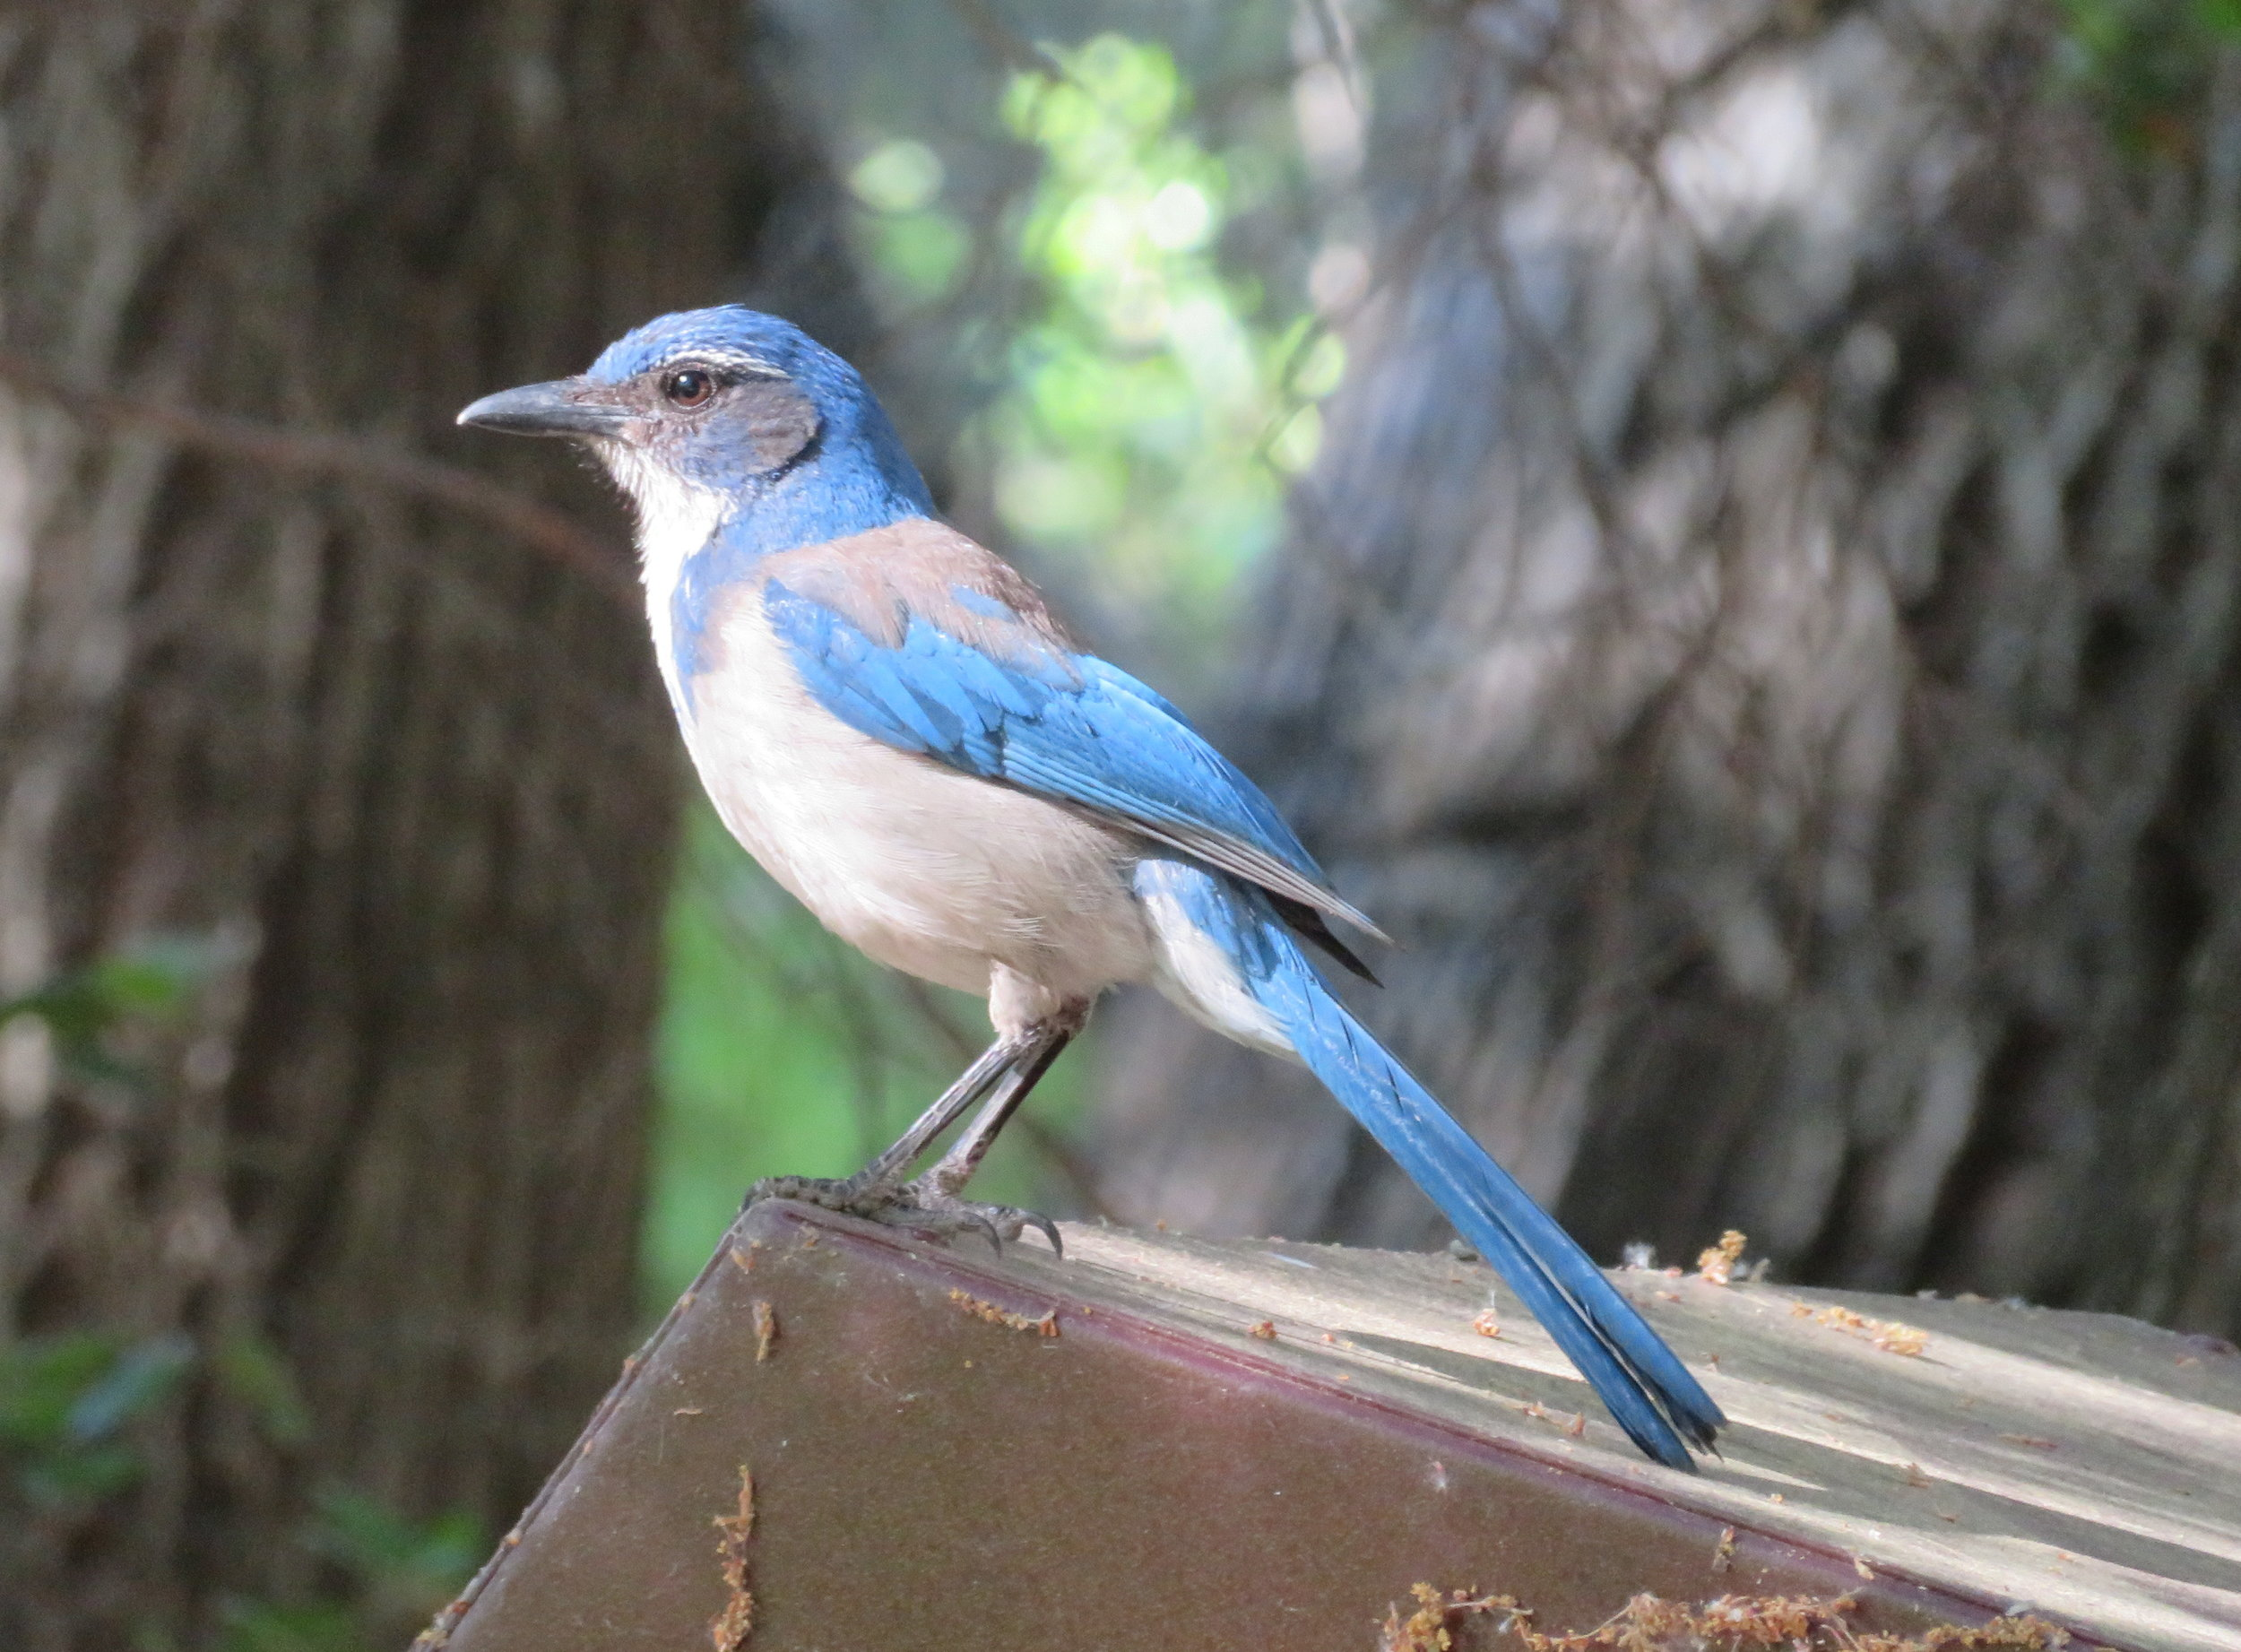 Scrub jays are beautiful, but mischievous, snatching anything left on our picnic table.